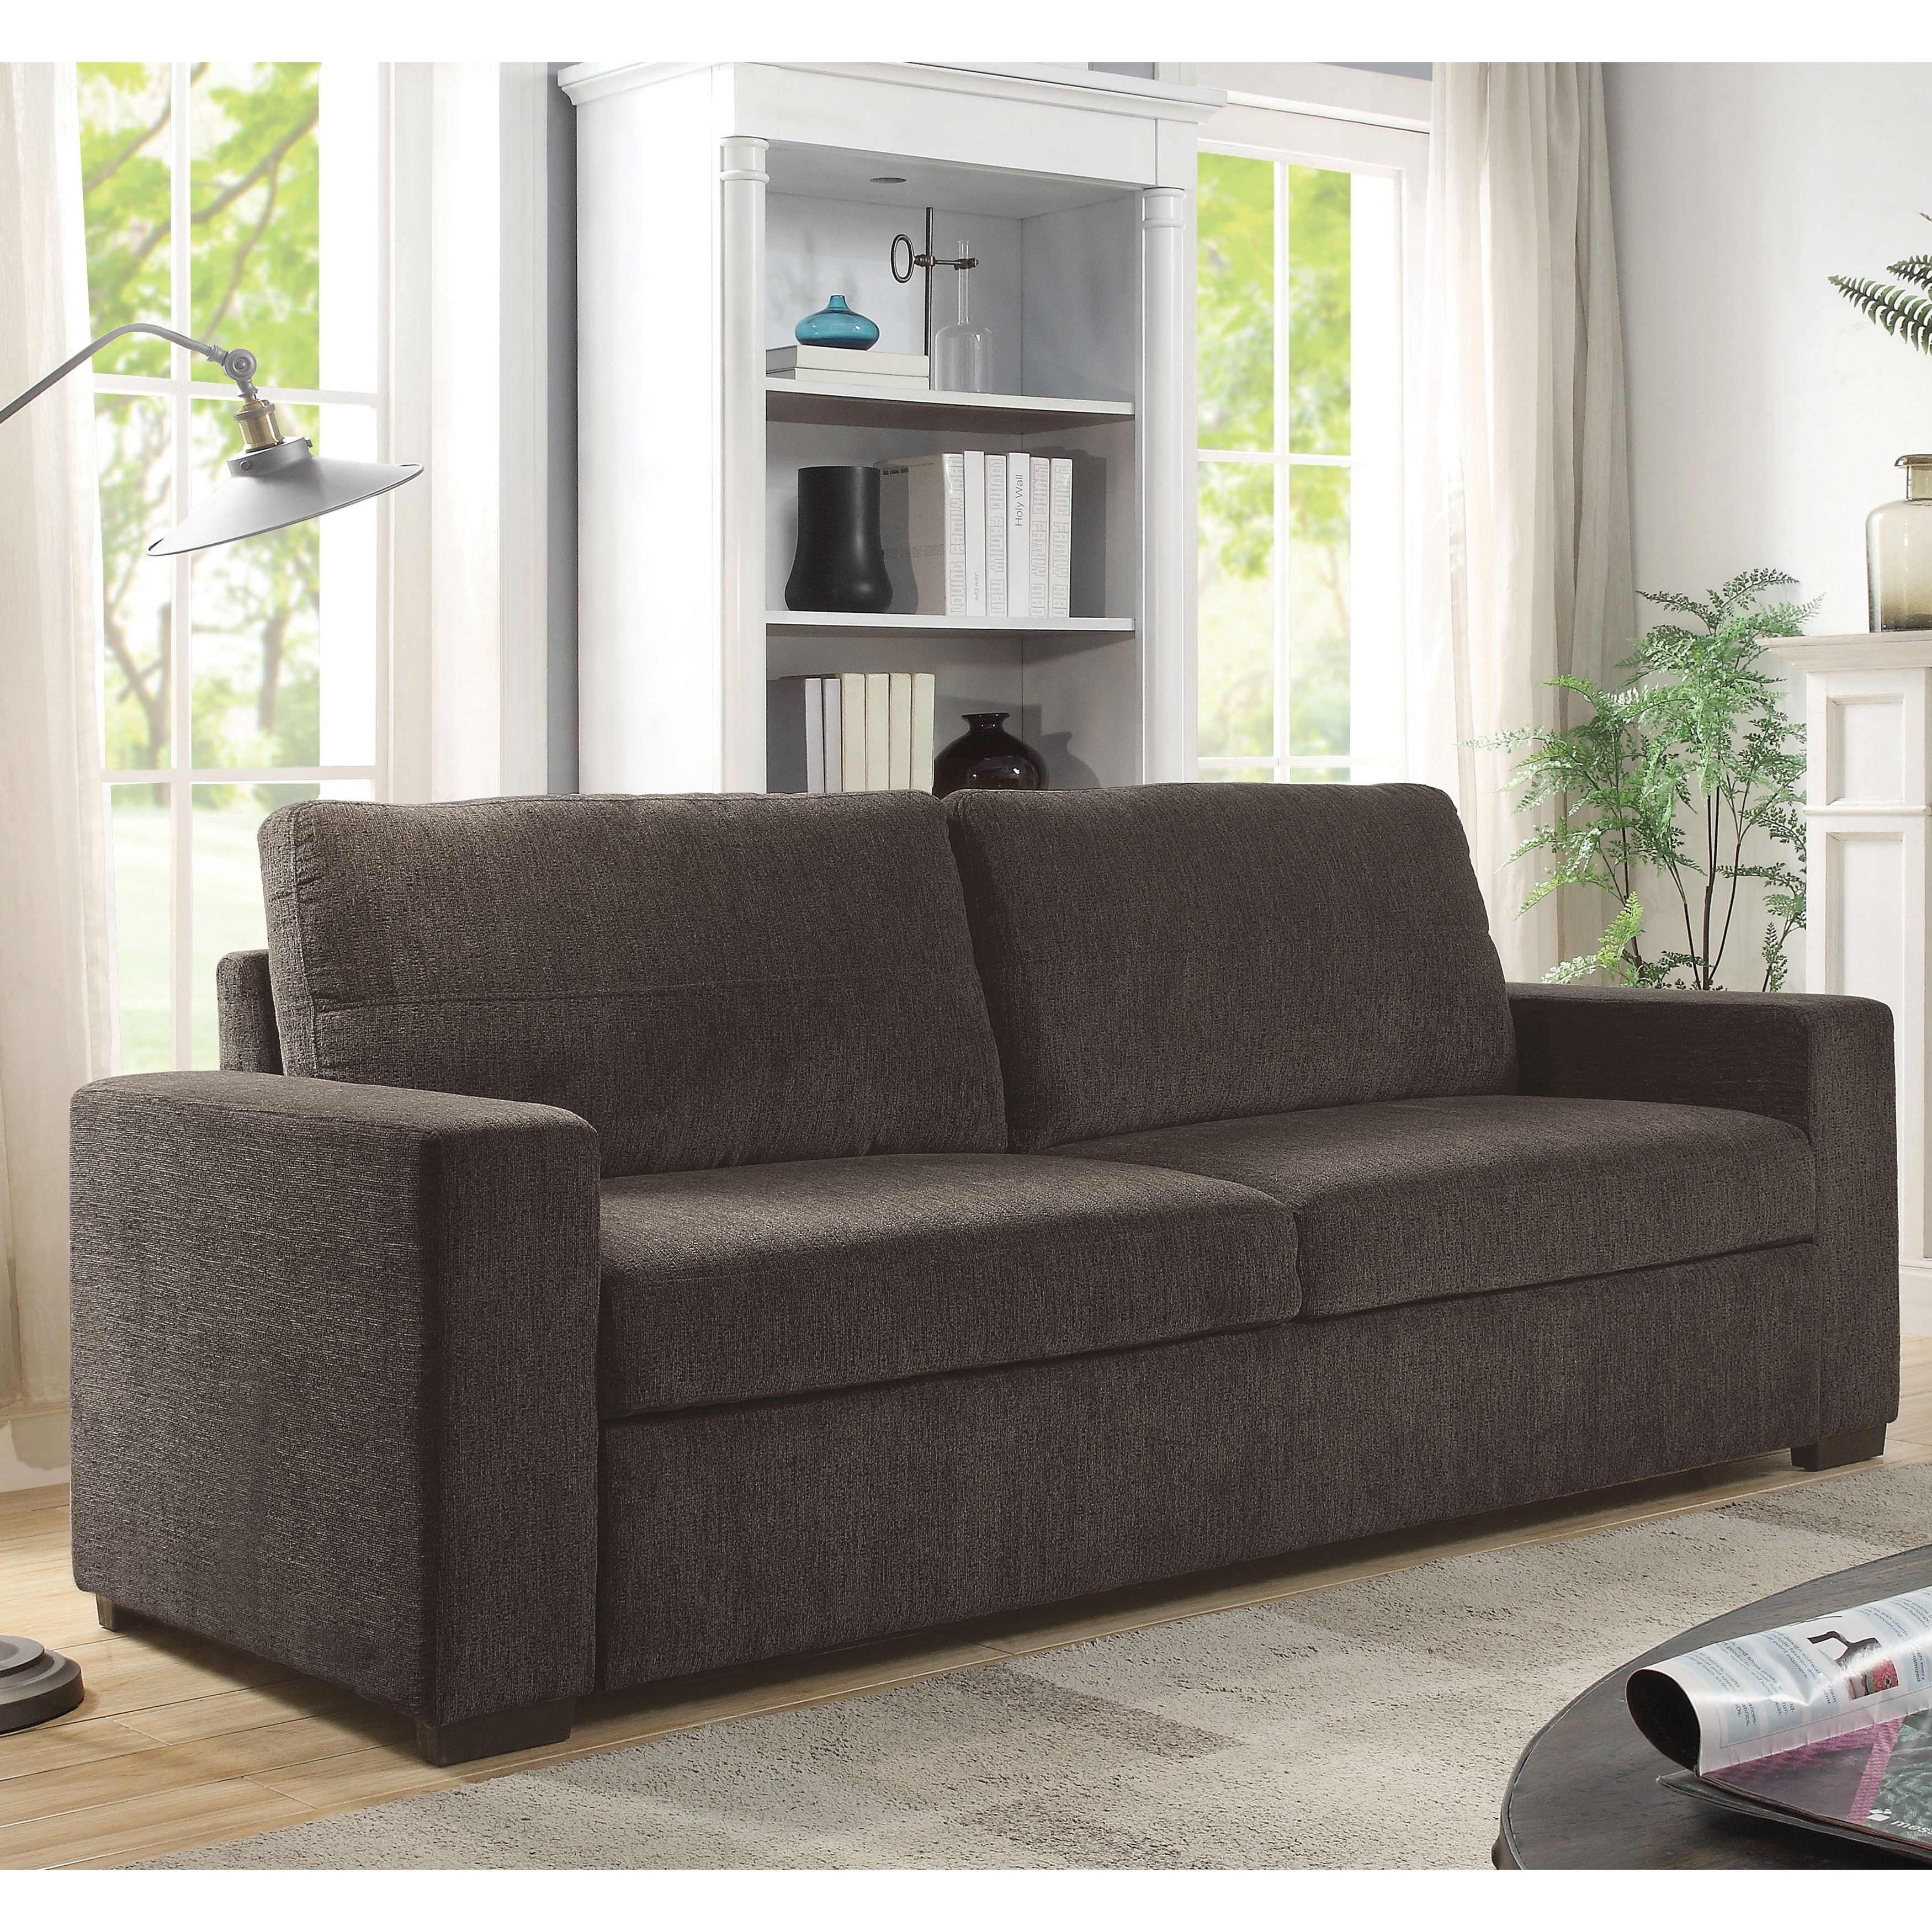 Furniture of america dane microfiber brown chenille sofa bed sleeper